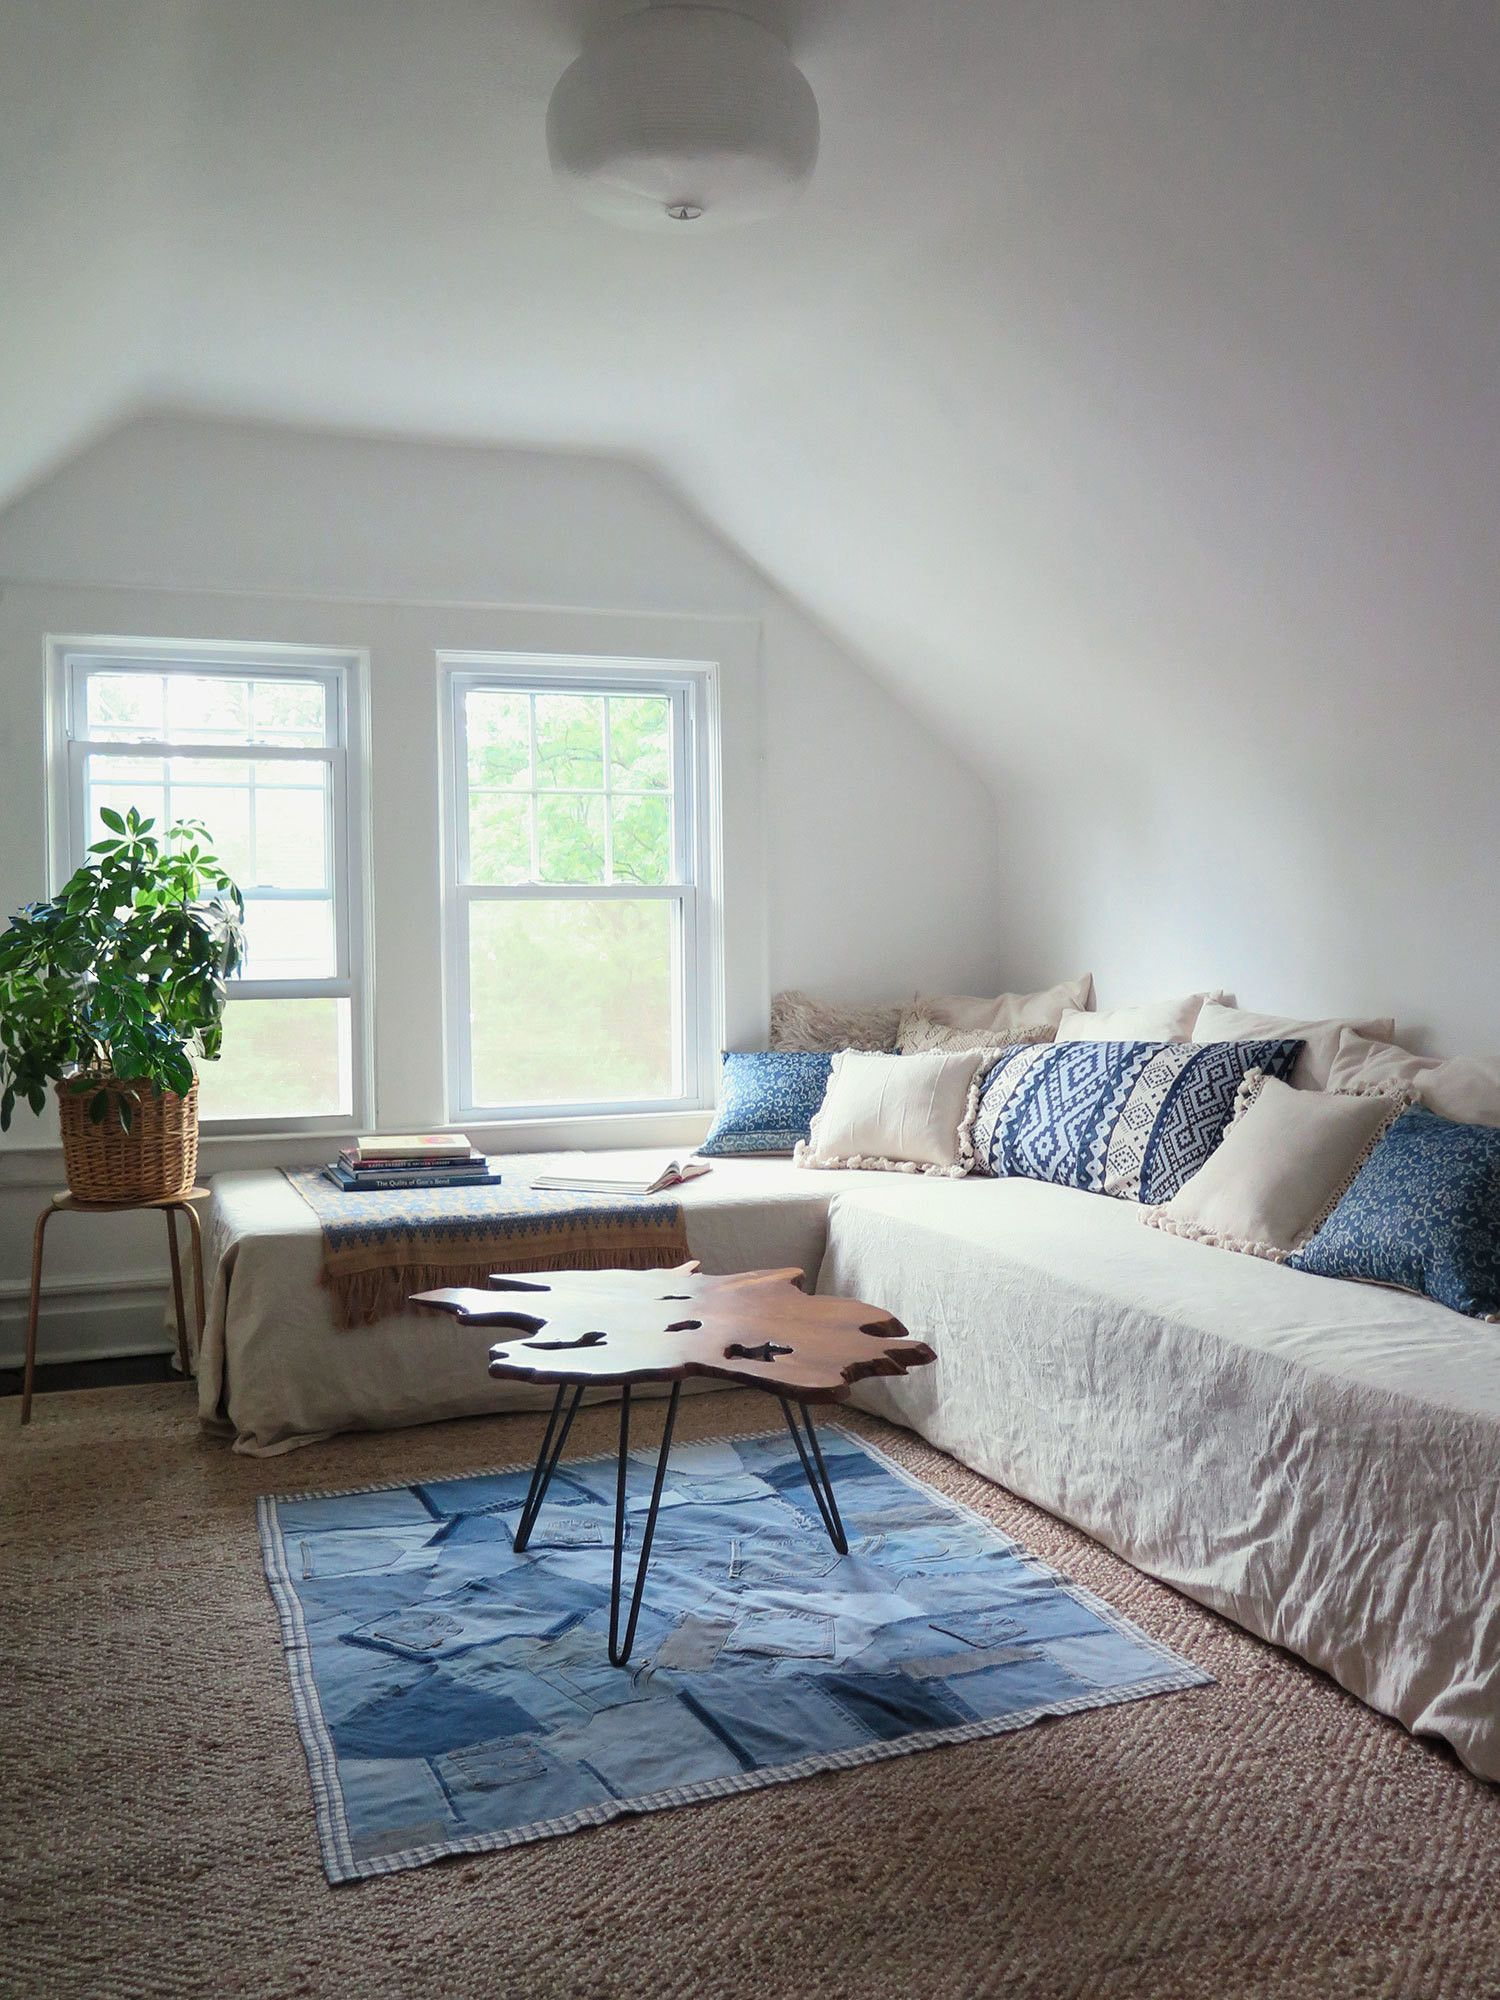 daybeds double as seating..Moody Blues - A Modern Bohemian Home in South Orange, New Jersey - Photos